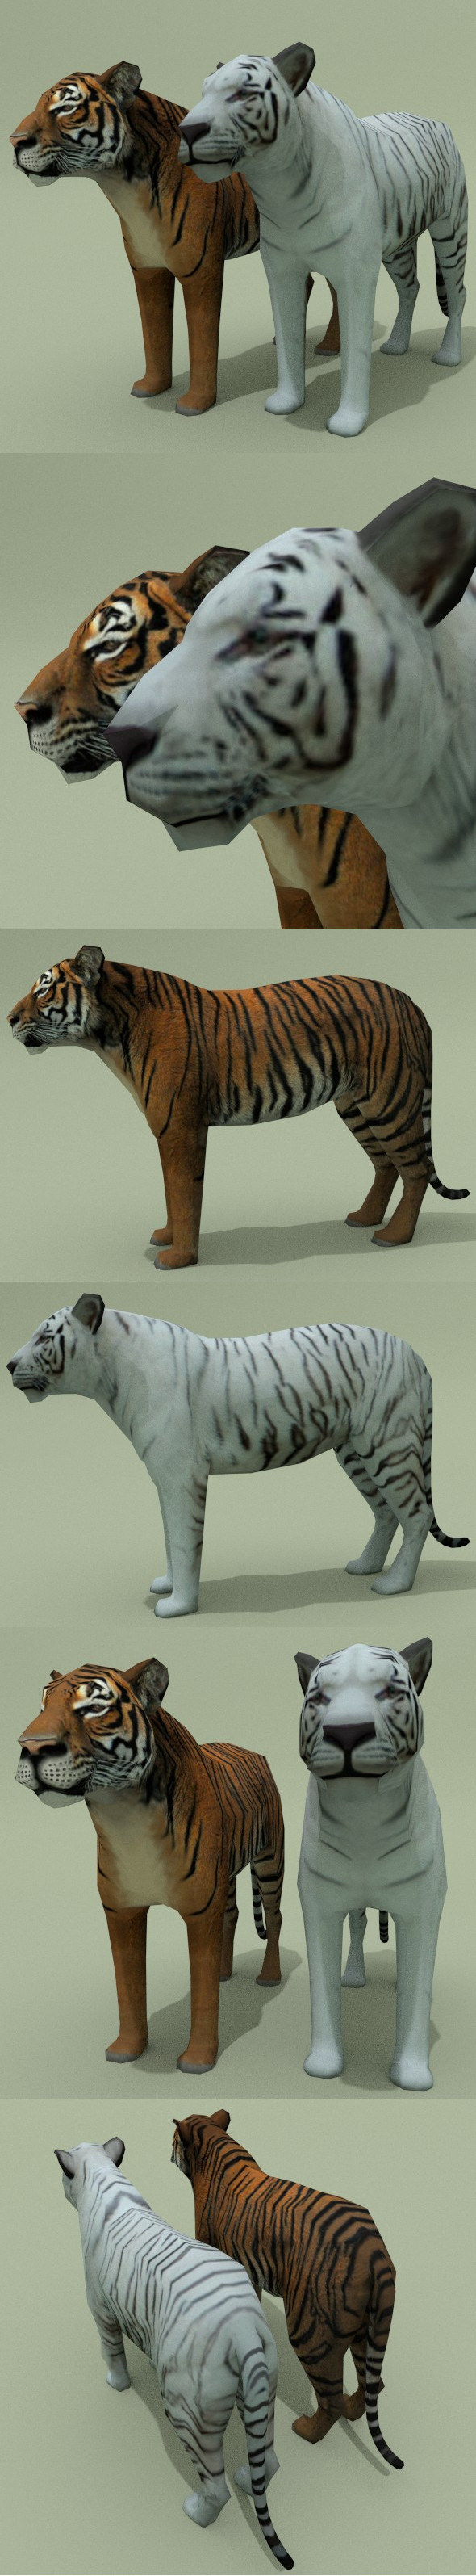 Low Poly Tiger (Red & White) - 3DOcean Item for Sale